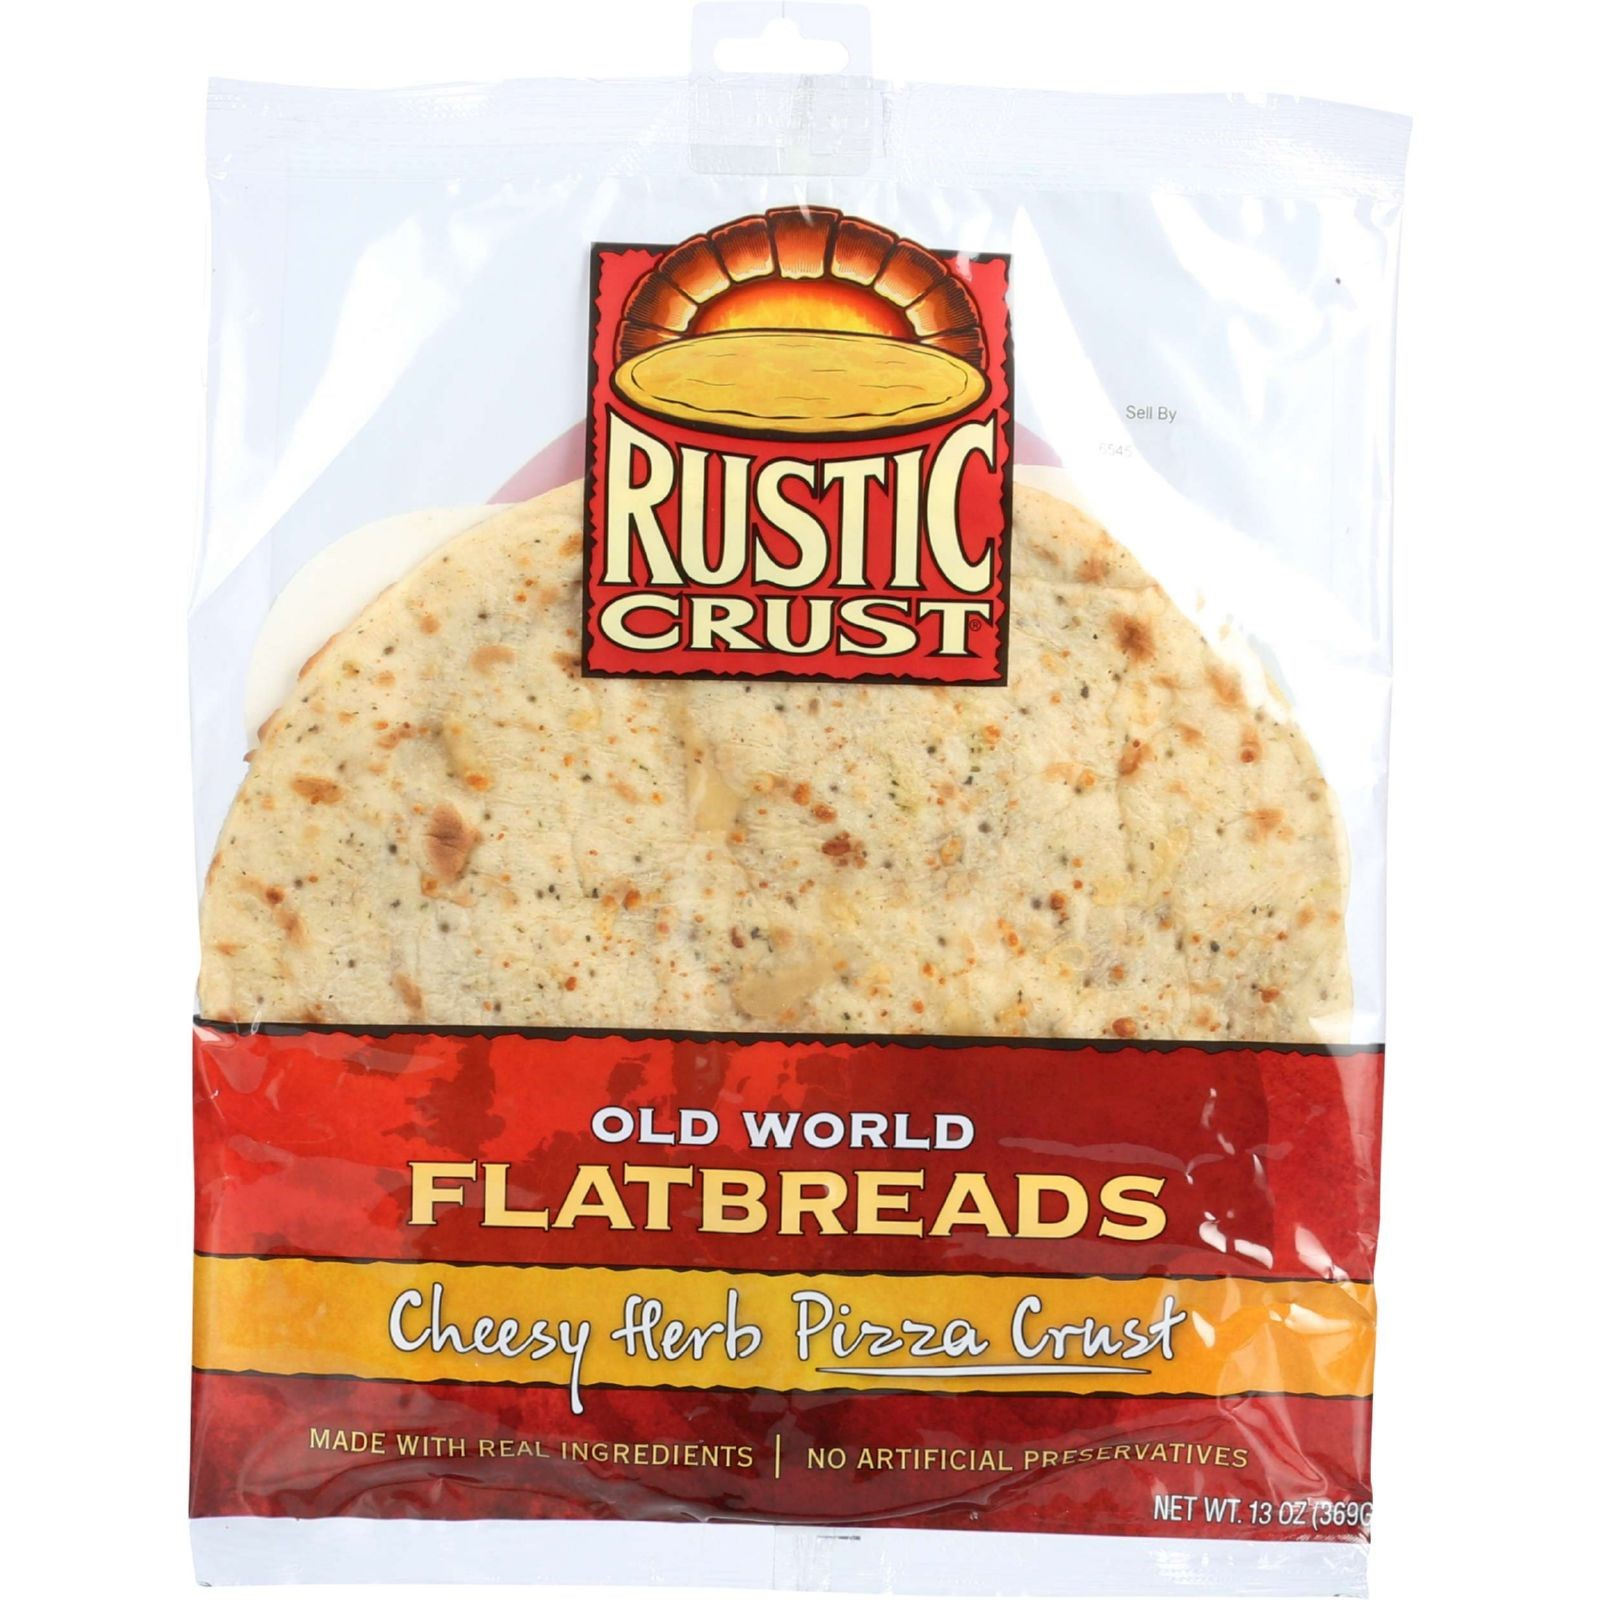 Rustic Crust Cheesy Herb Pizza Crust, 16 Oz